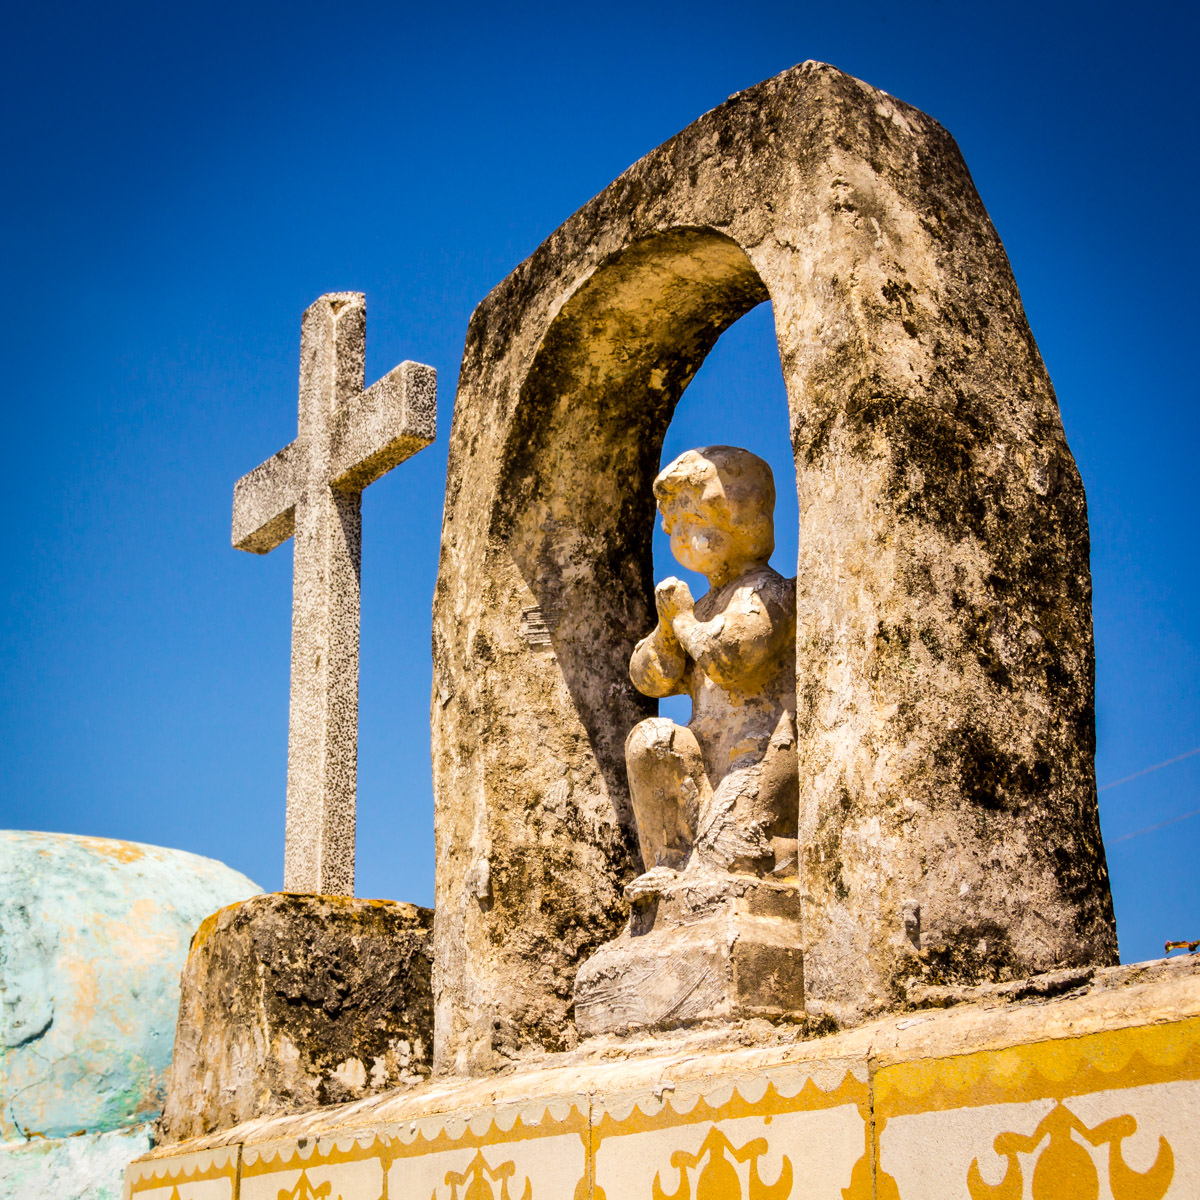 A cherubic statue atop a grave in a cemetery in the Yucatan town of Dzemul, Mexico.